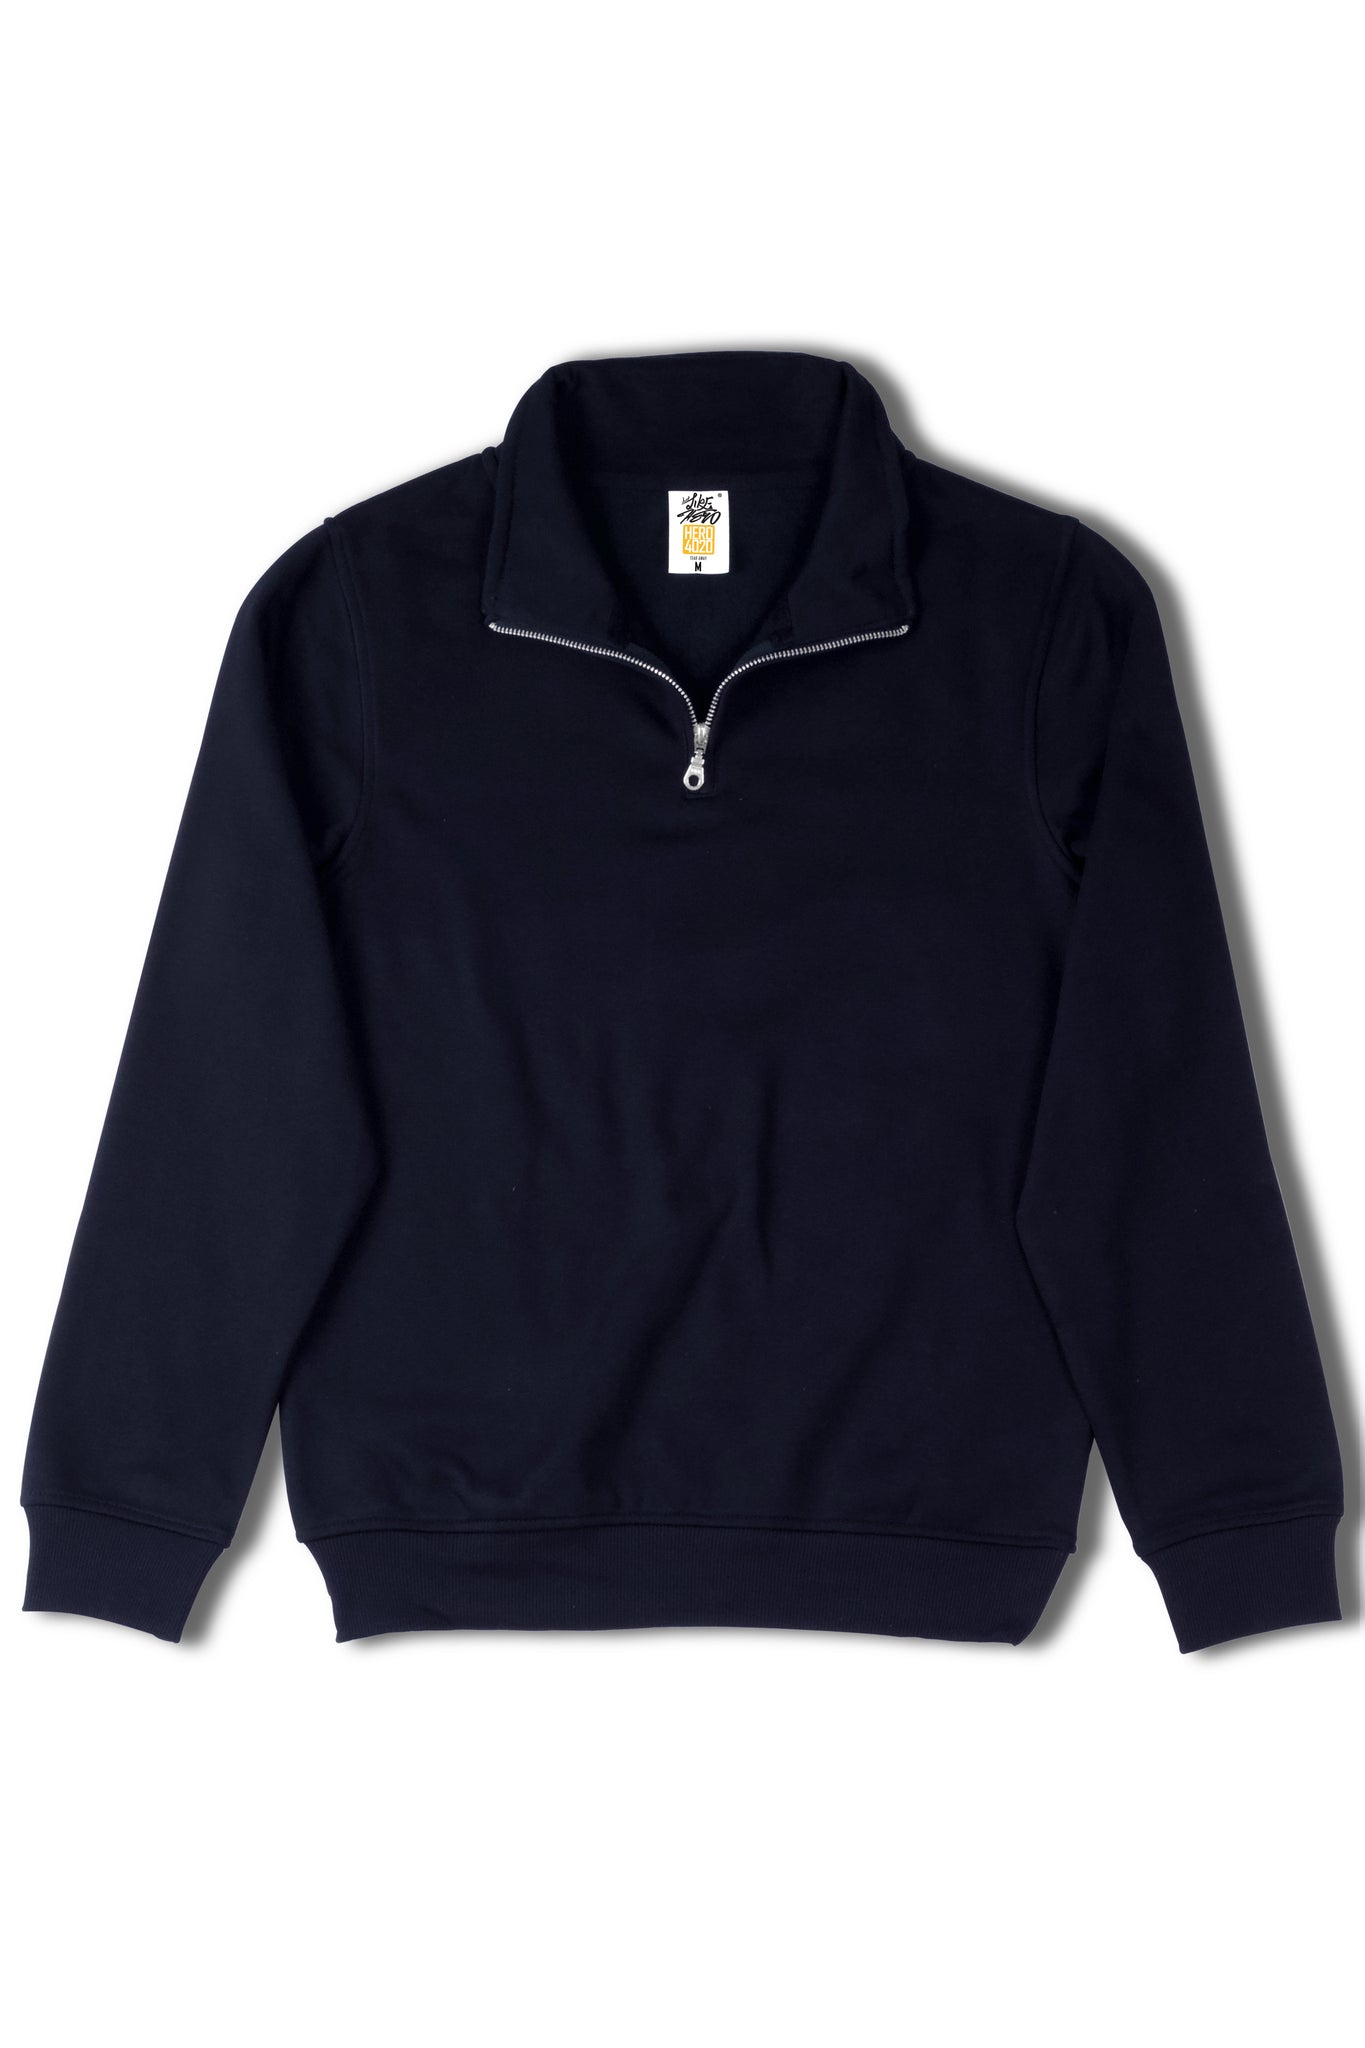 HERO-4020 Unisex Quarter Zip Sweatshirt - Navy Blue